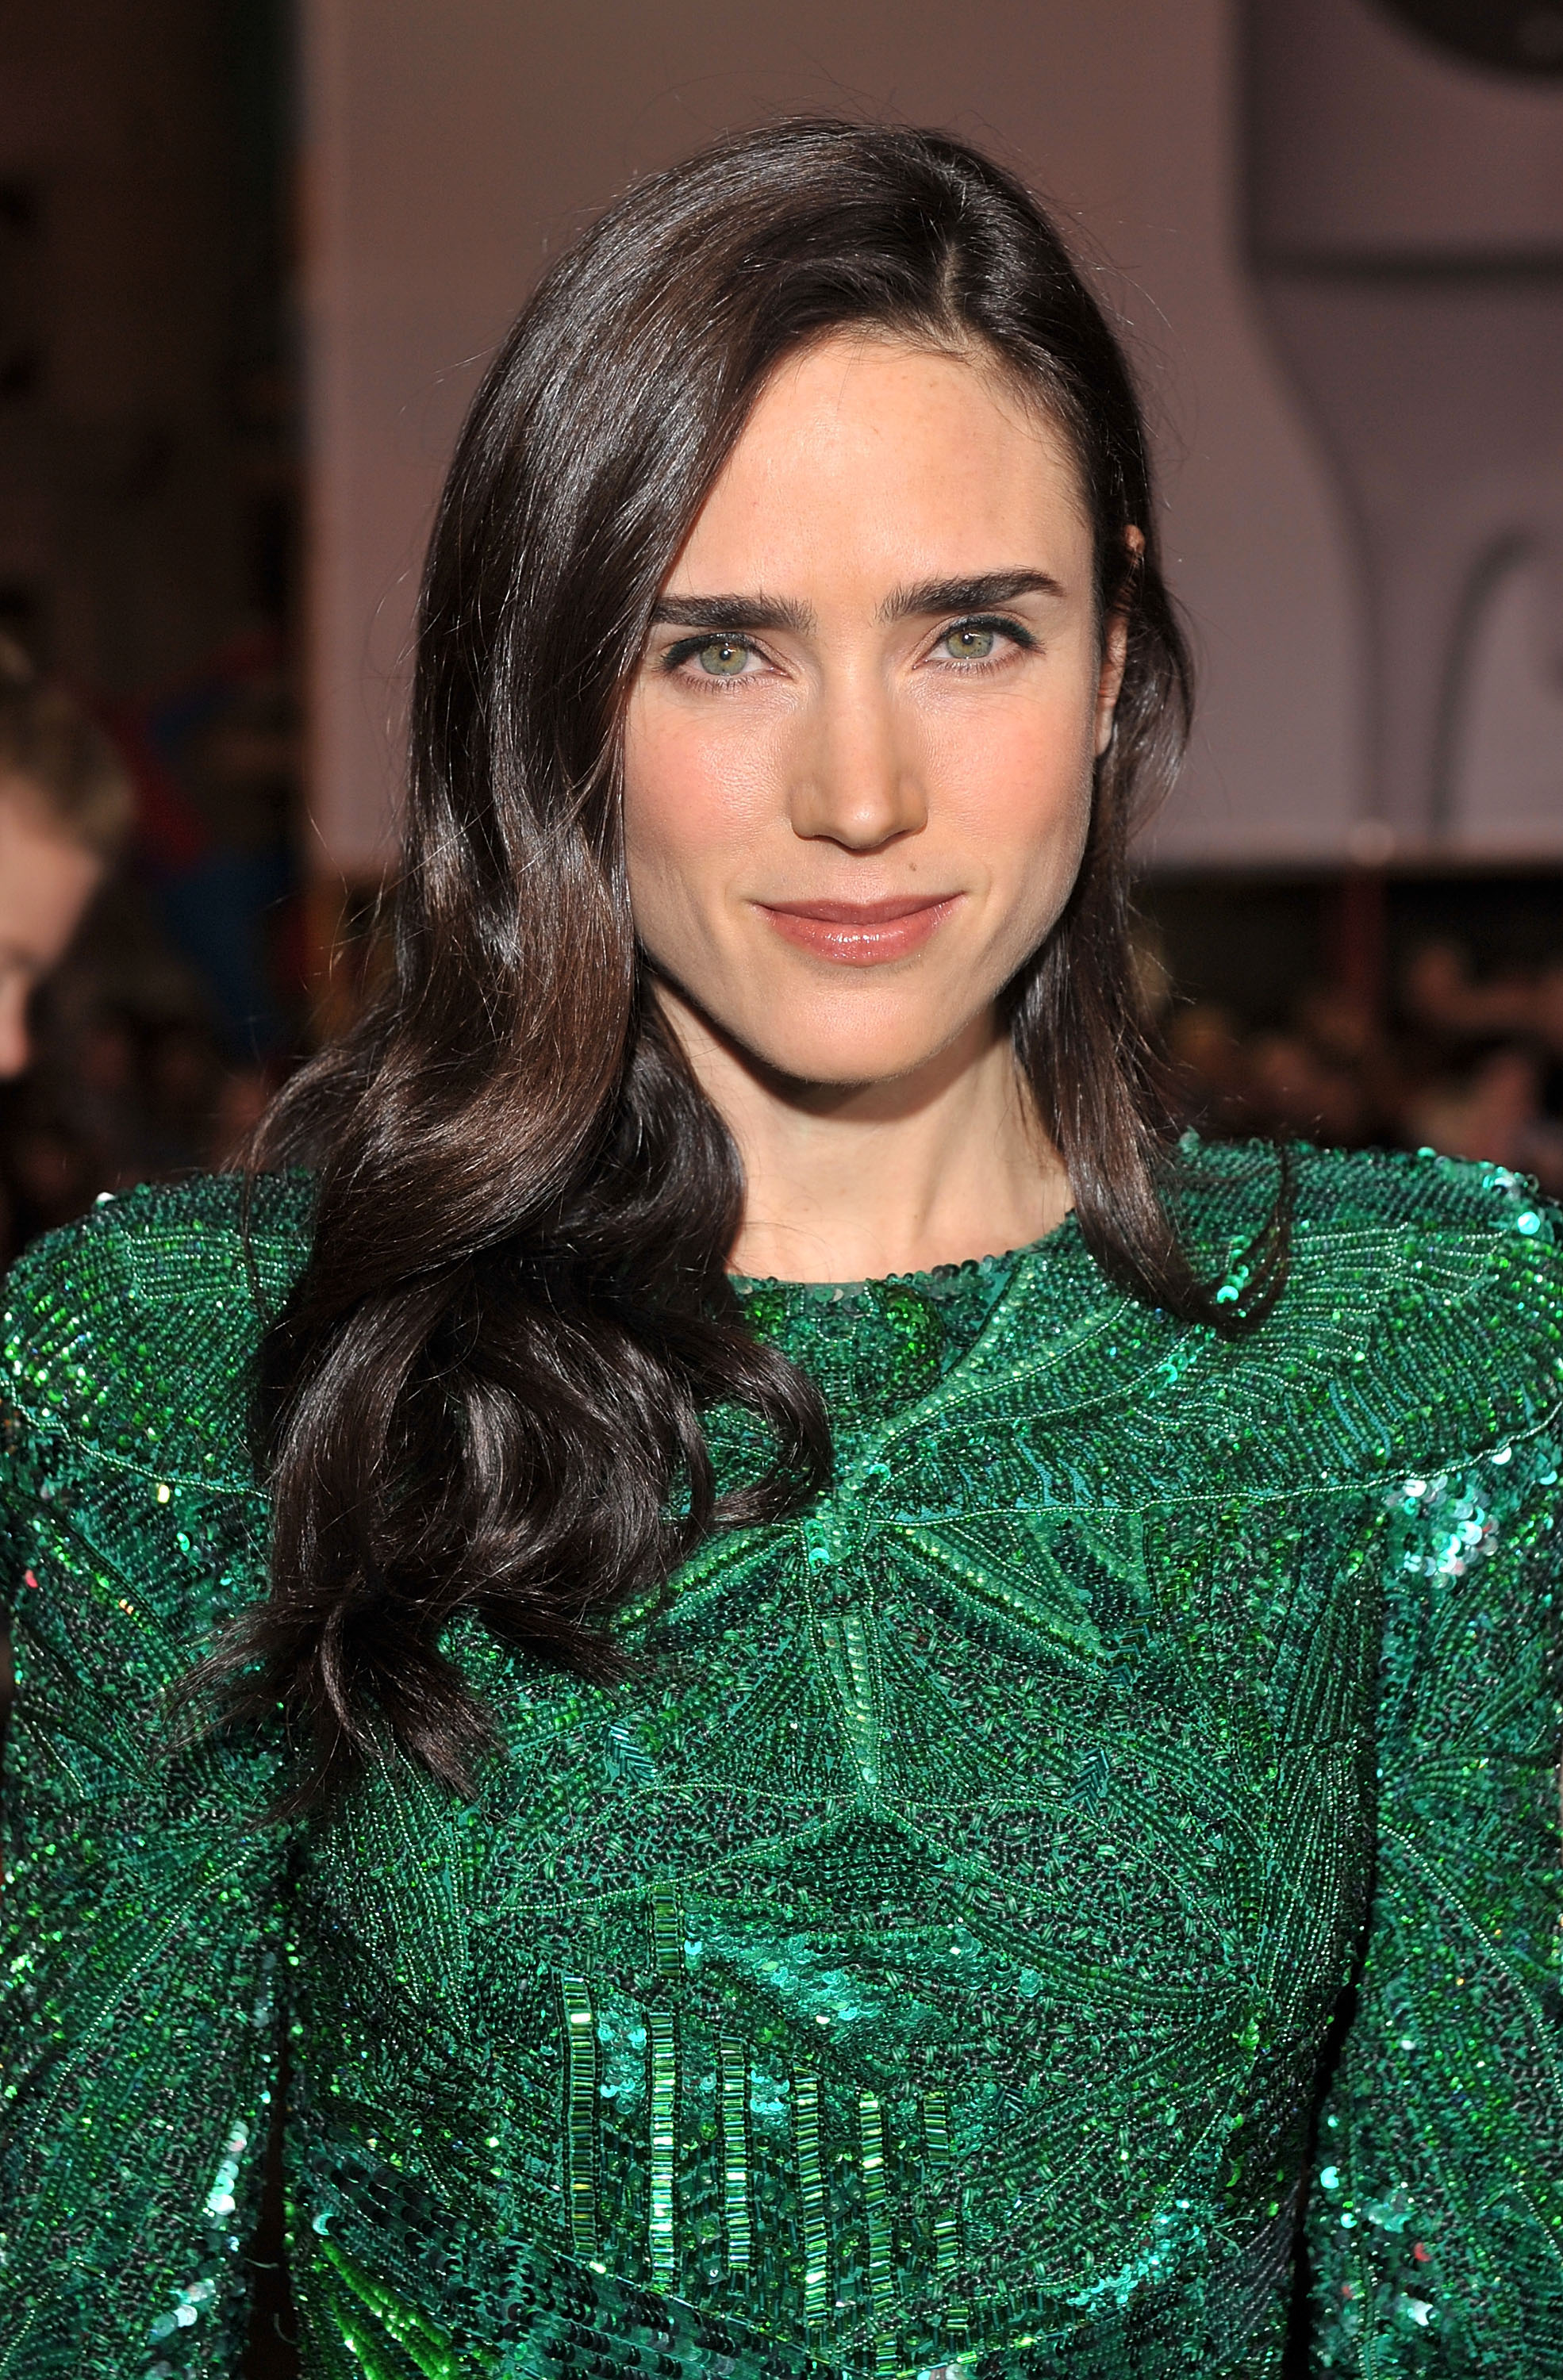 "Actress Jennifer Connelly arrives on the red carpet at the Warner Bros. Los Angeles Premiere of ""He's Just Not That Into You"" held at the Grauman's Chinese Theatre on February 2, 2009 in Los Angeles, California. ""He's Just Not That Into You"" Los Angeles Premiere - Red Carpet Grauman's Chinese Theatre Los Angeles, CA United States February 2, 2009 Photo by Lester Cohen/WireImage.com To license this image (56631603), contact WireImage.com"